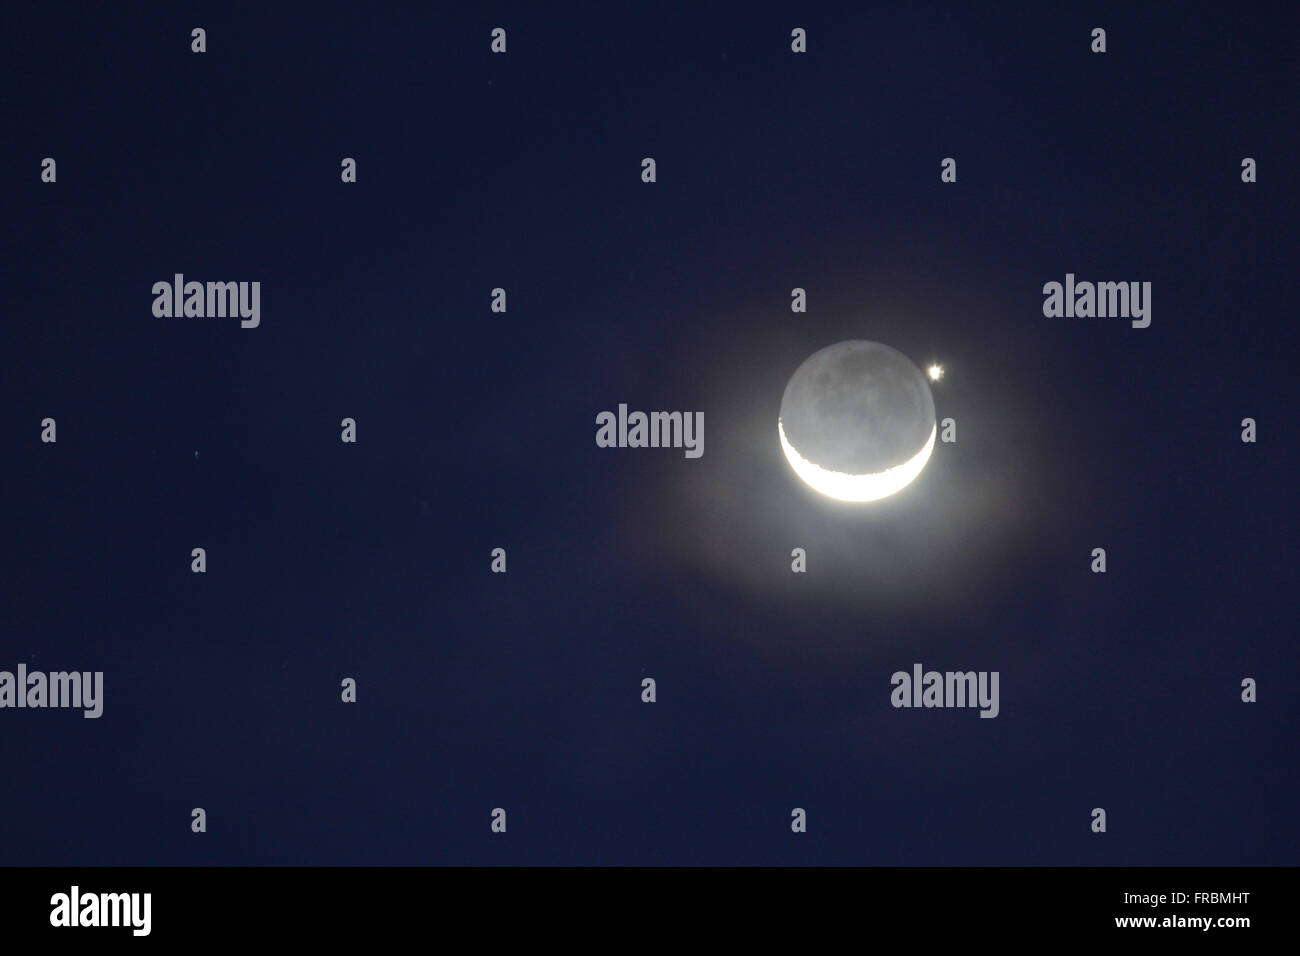 Moon and planet Venus viewed together - Stock Image